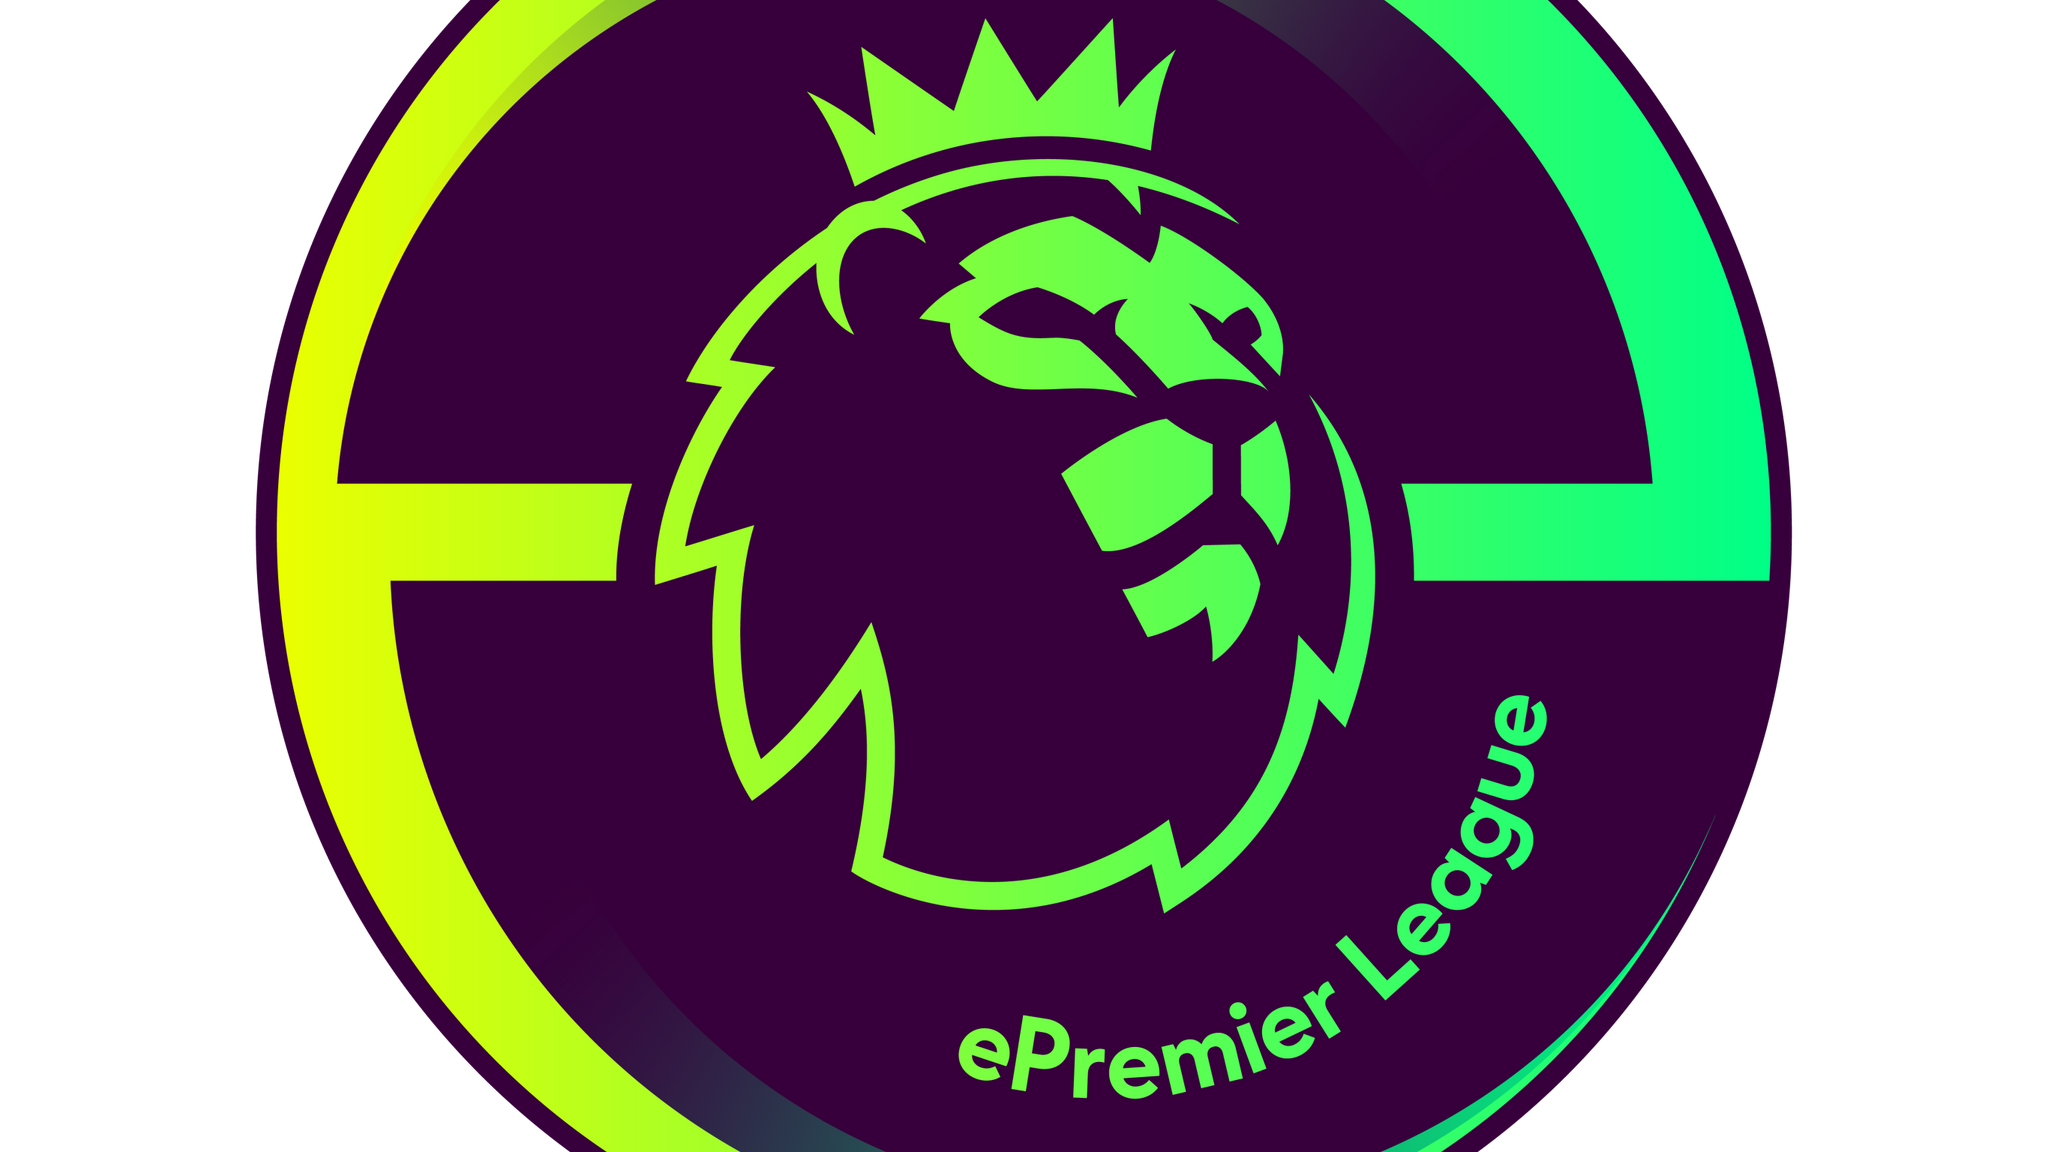 Premier League Stars Ready For Action In Epl Invitational Tournament Live On Sky Sports Football News Sky Sports